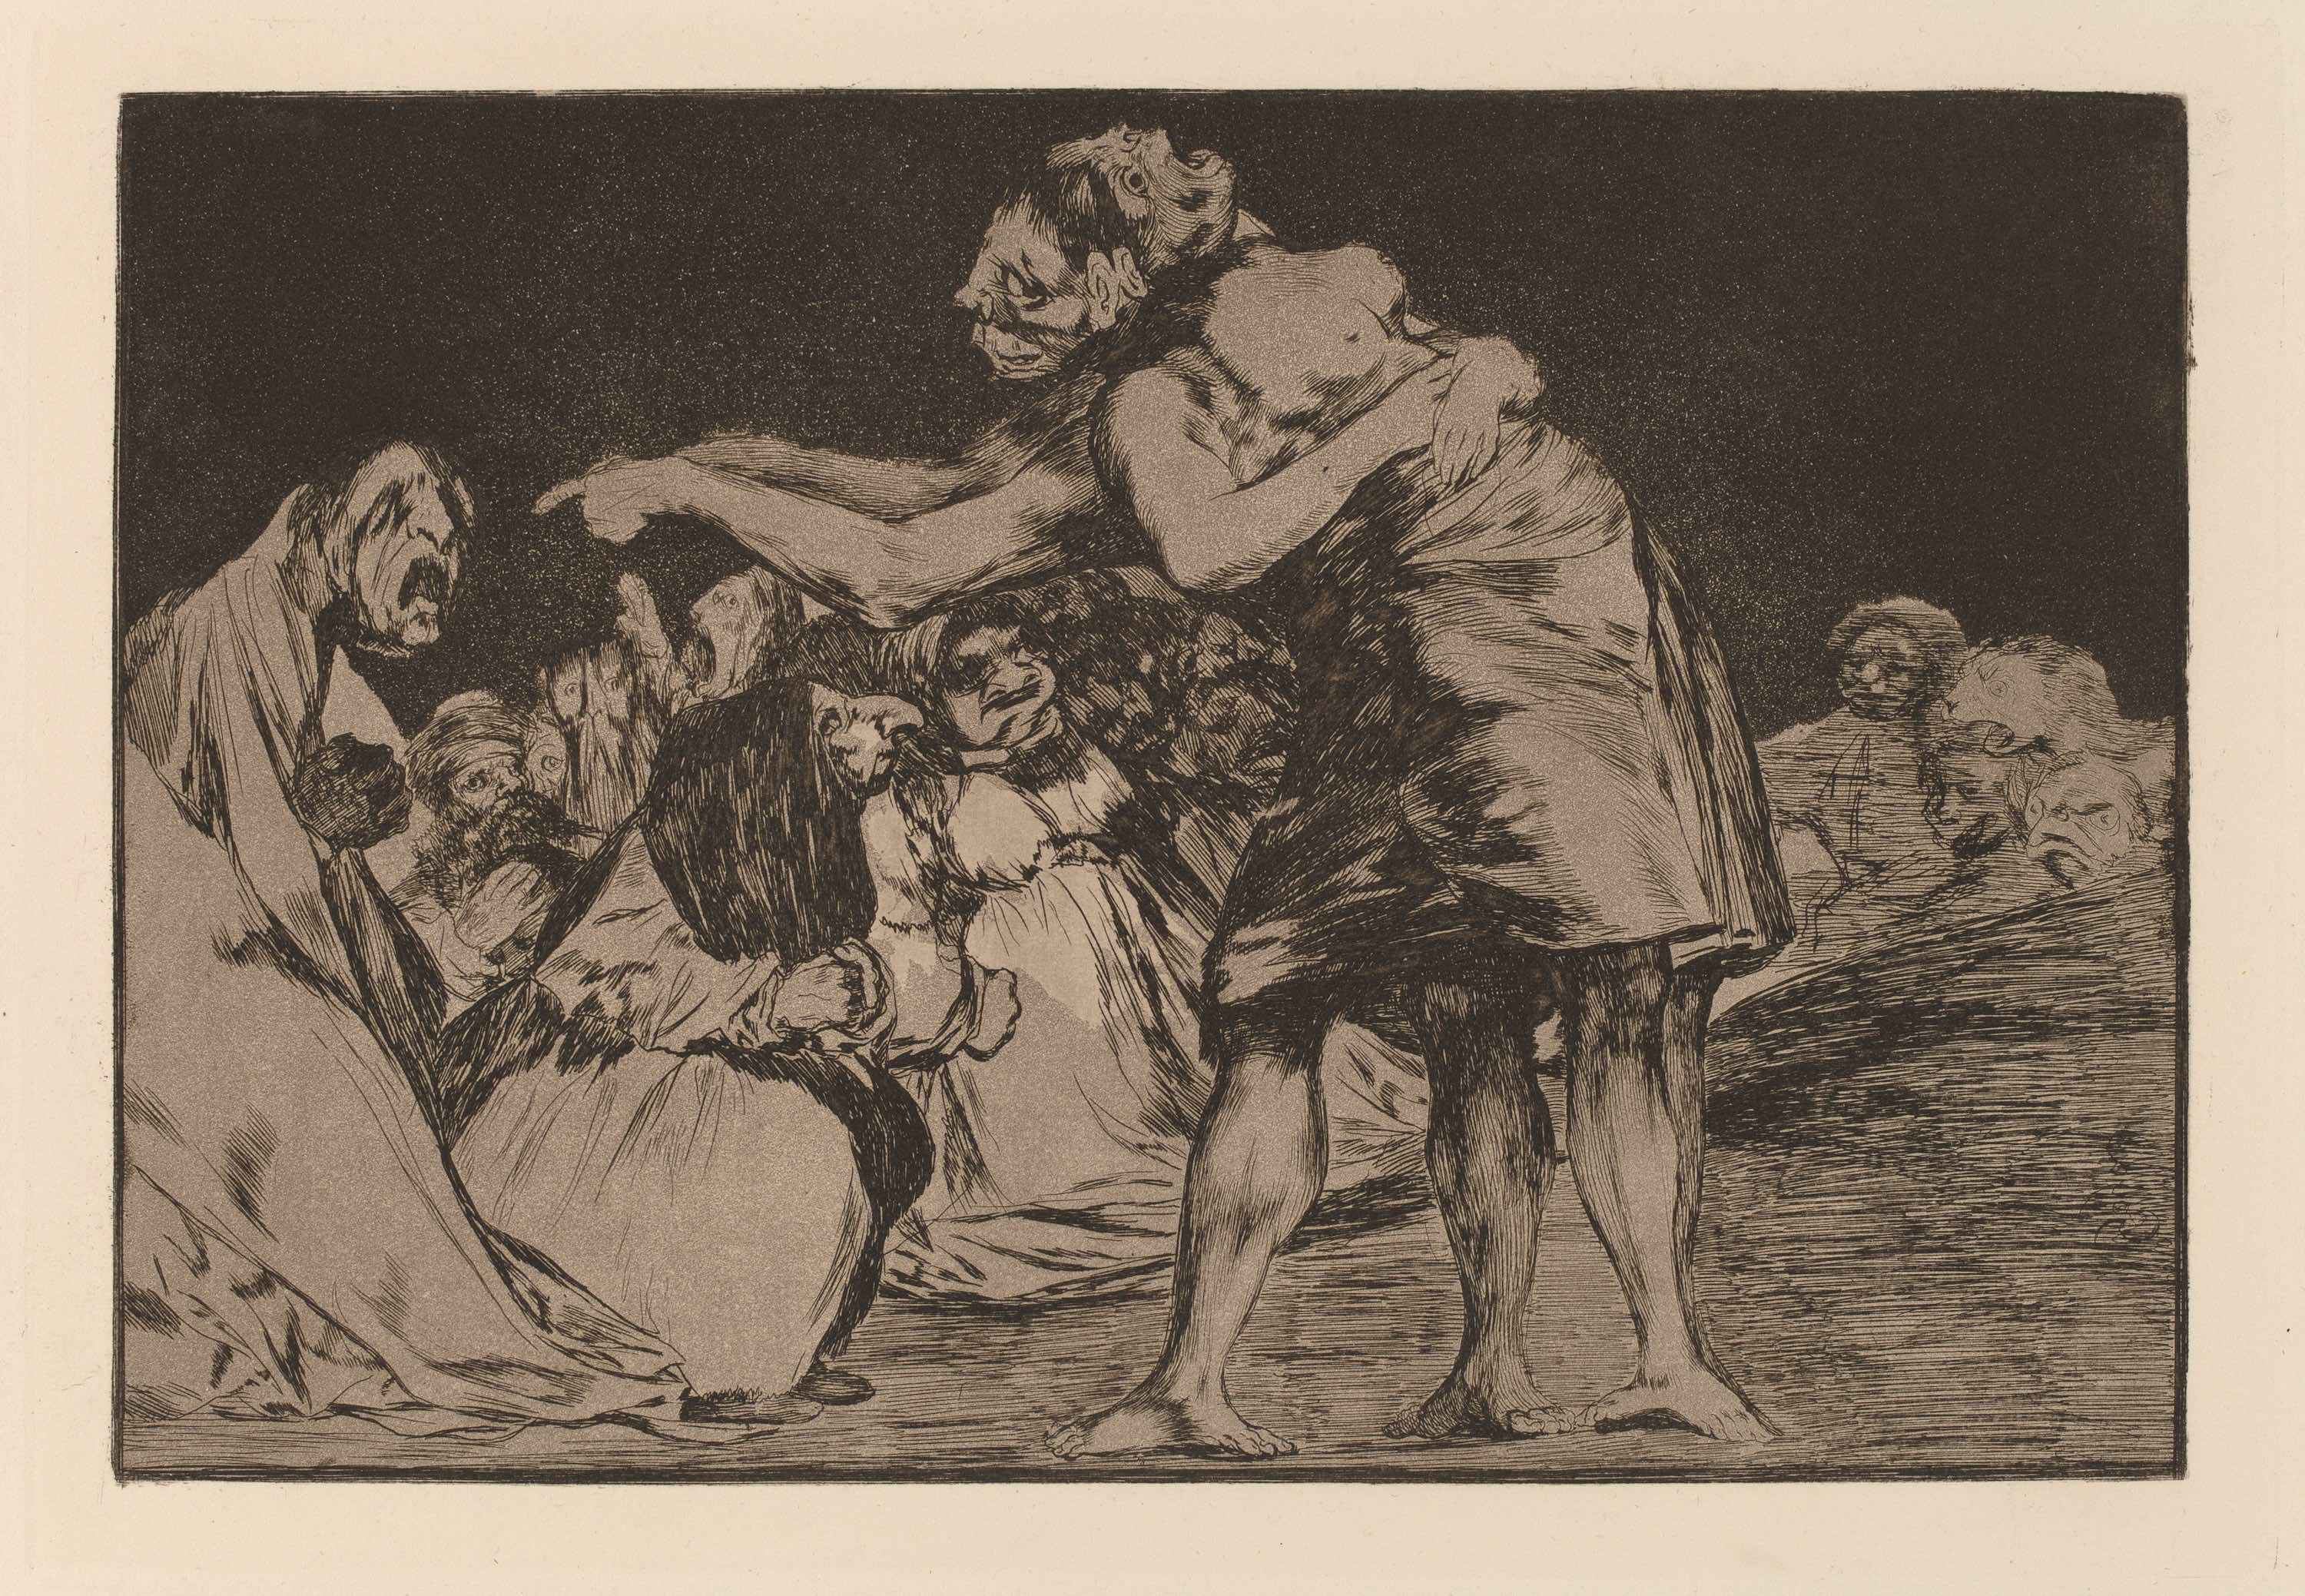 Francisco de Goya, Disparate Desordenado (Disorderly Folly)